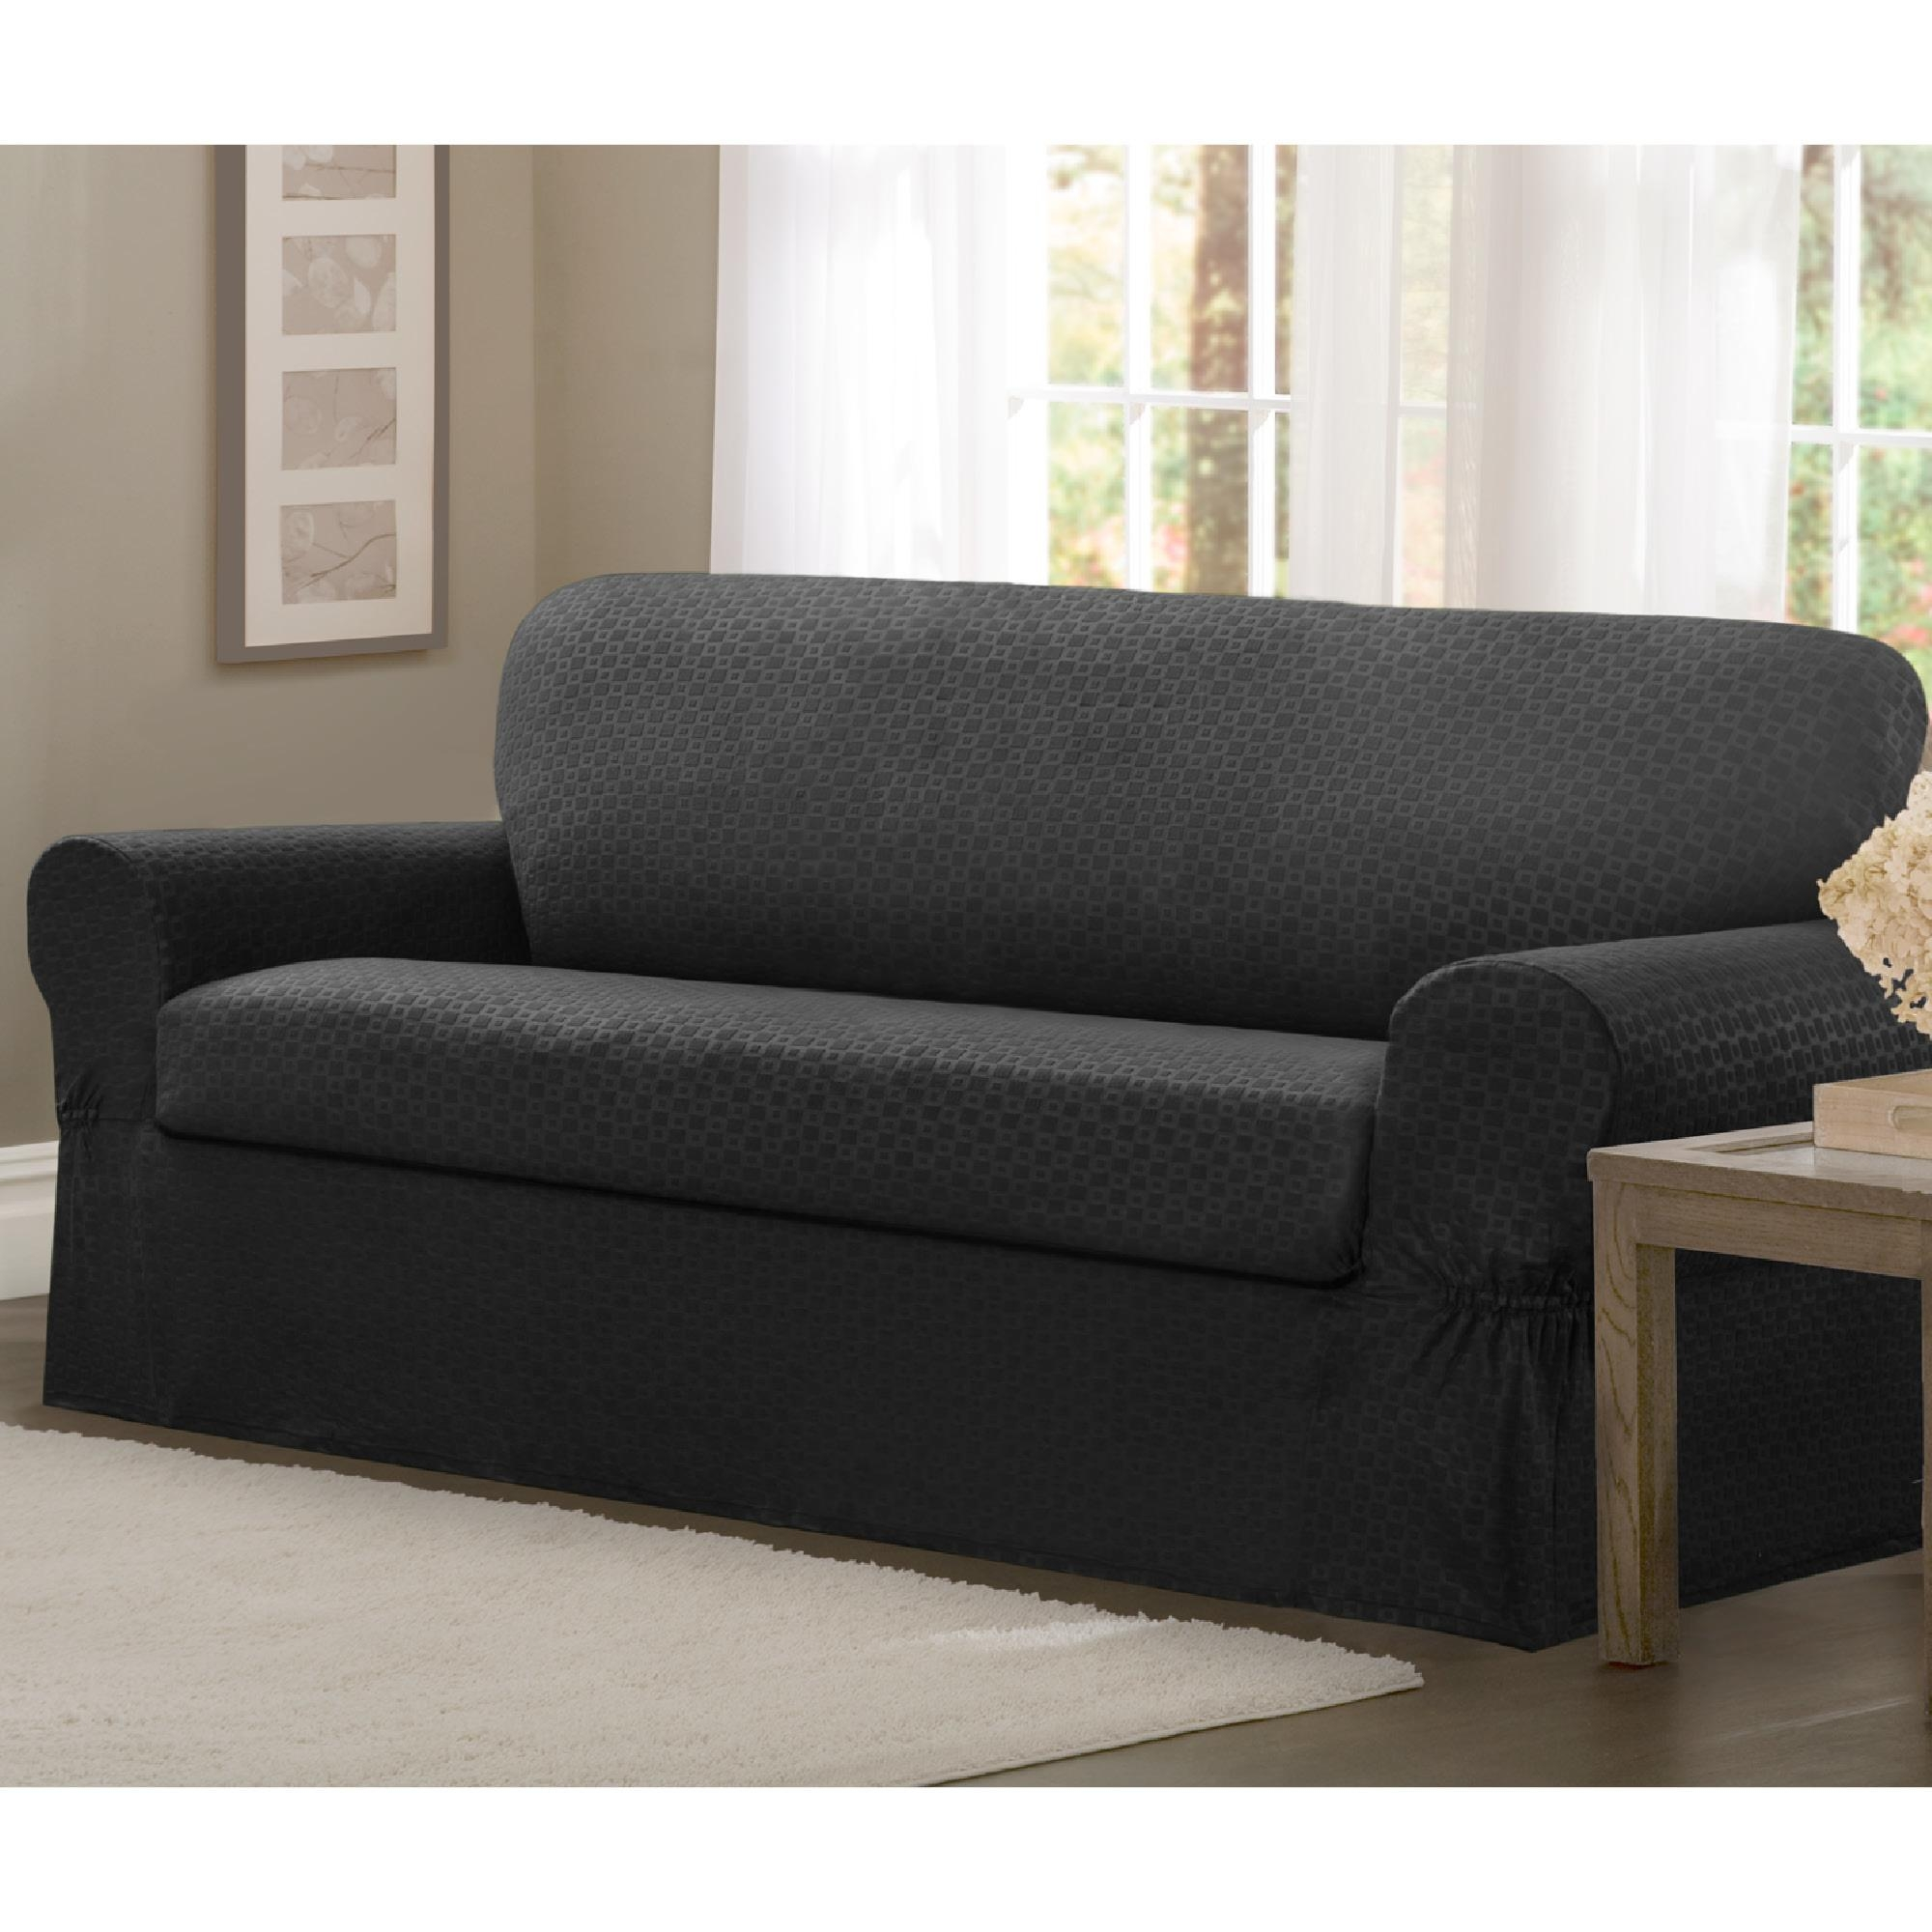 Furniture : 10 Maytex Conrad Stretch 2 Piece Sofa Slipcover Set With Regard To 2 Piece Sofa Covers (Image 7 of 27)